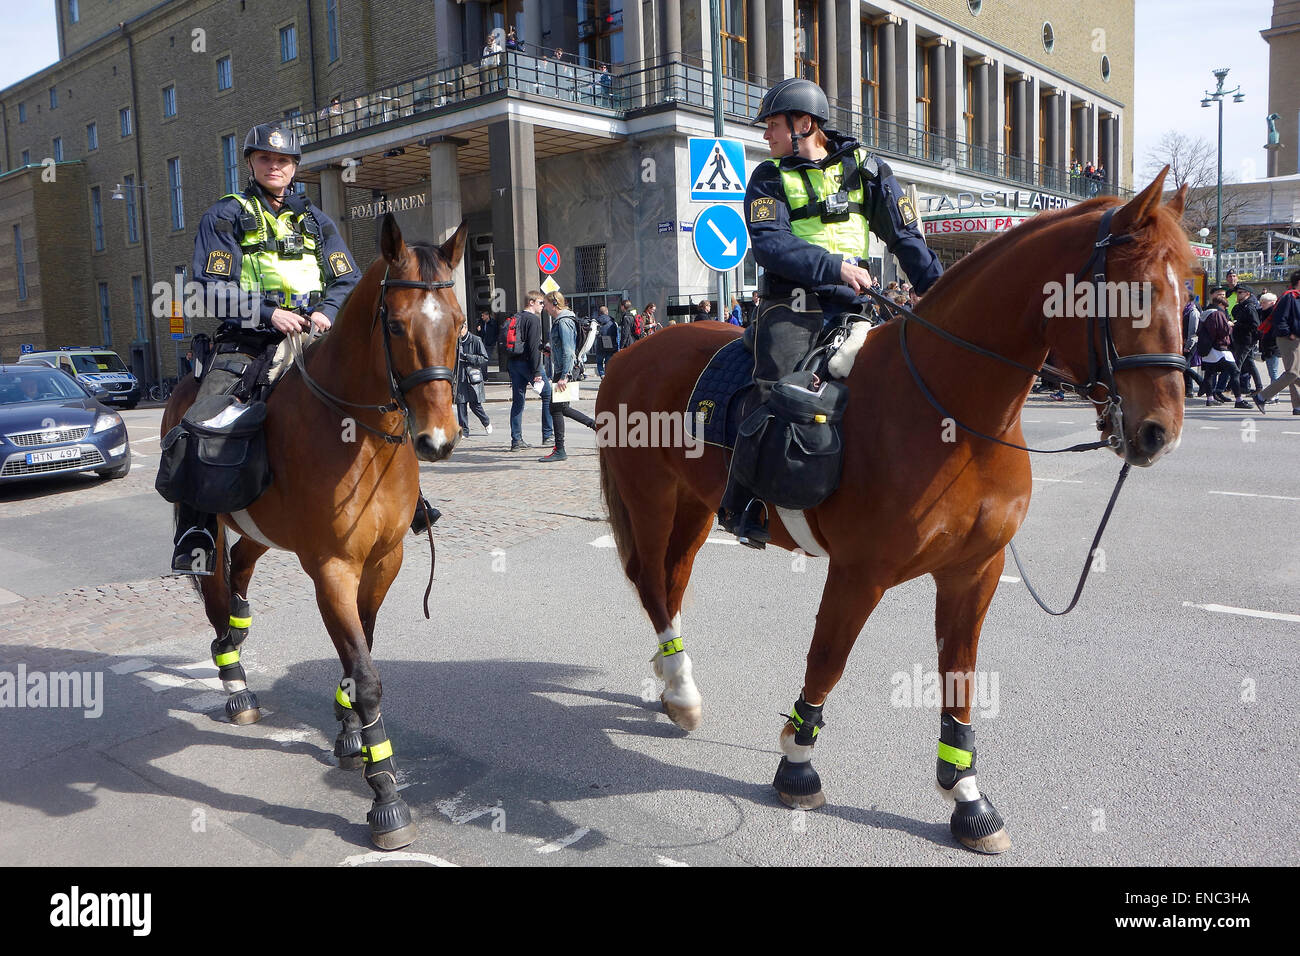 Two mounted female Swedish police officers patrolling on the street of Gothenburg city, Sweden - Stock Image